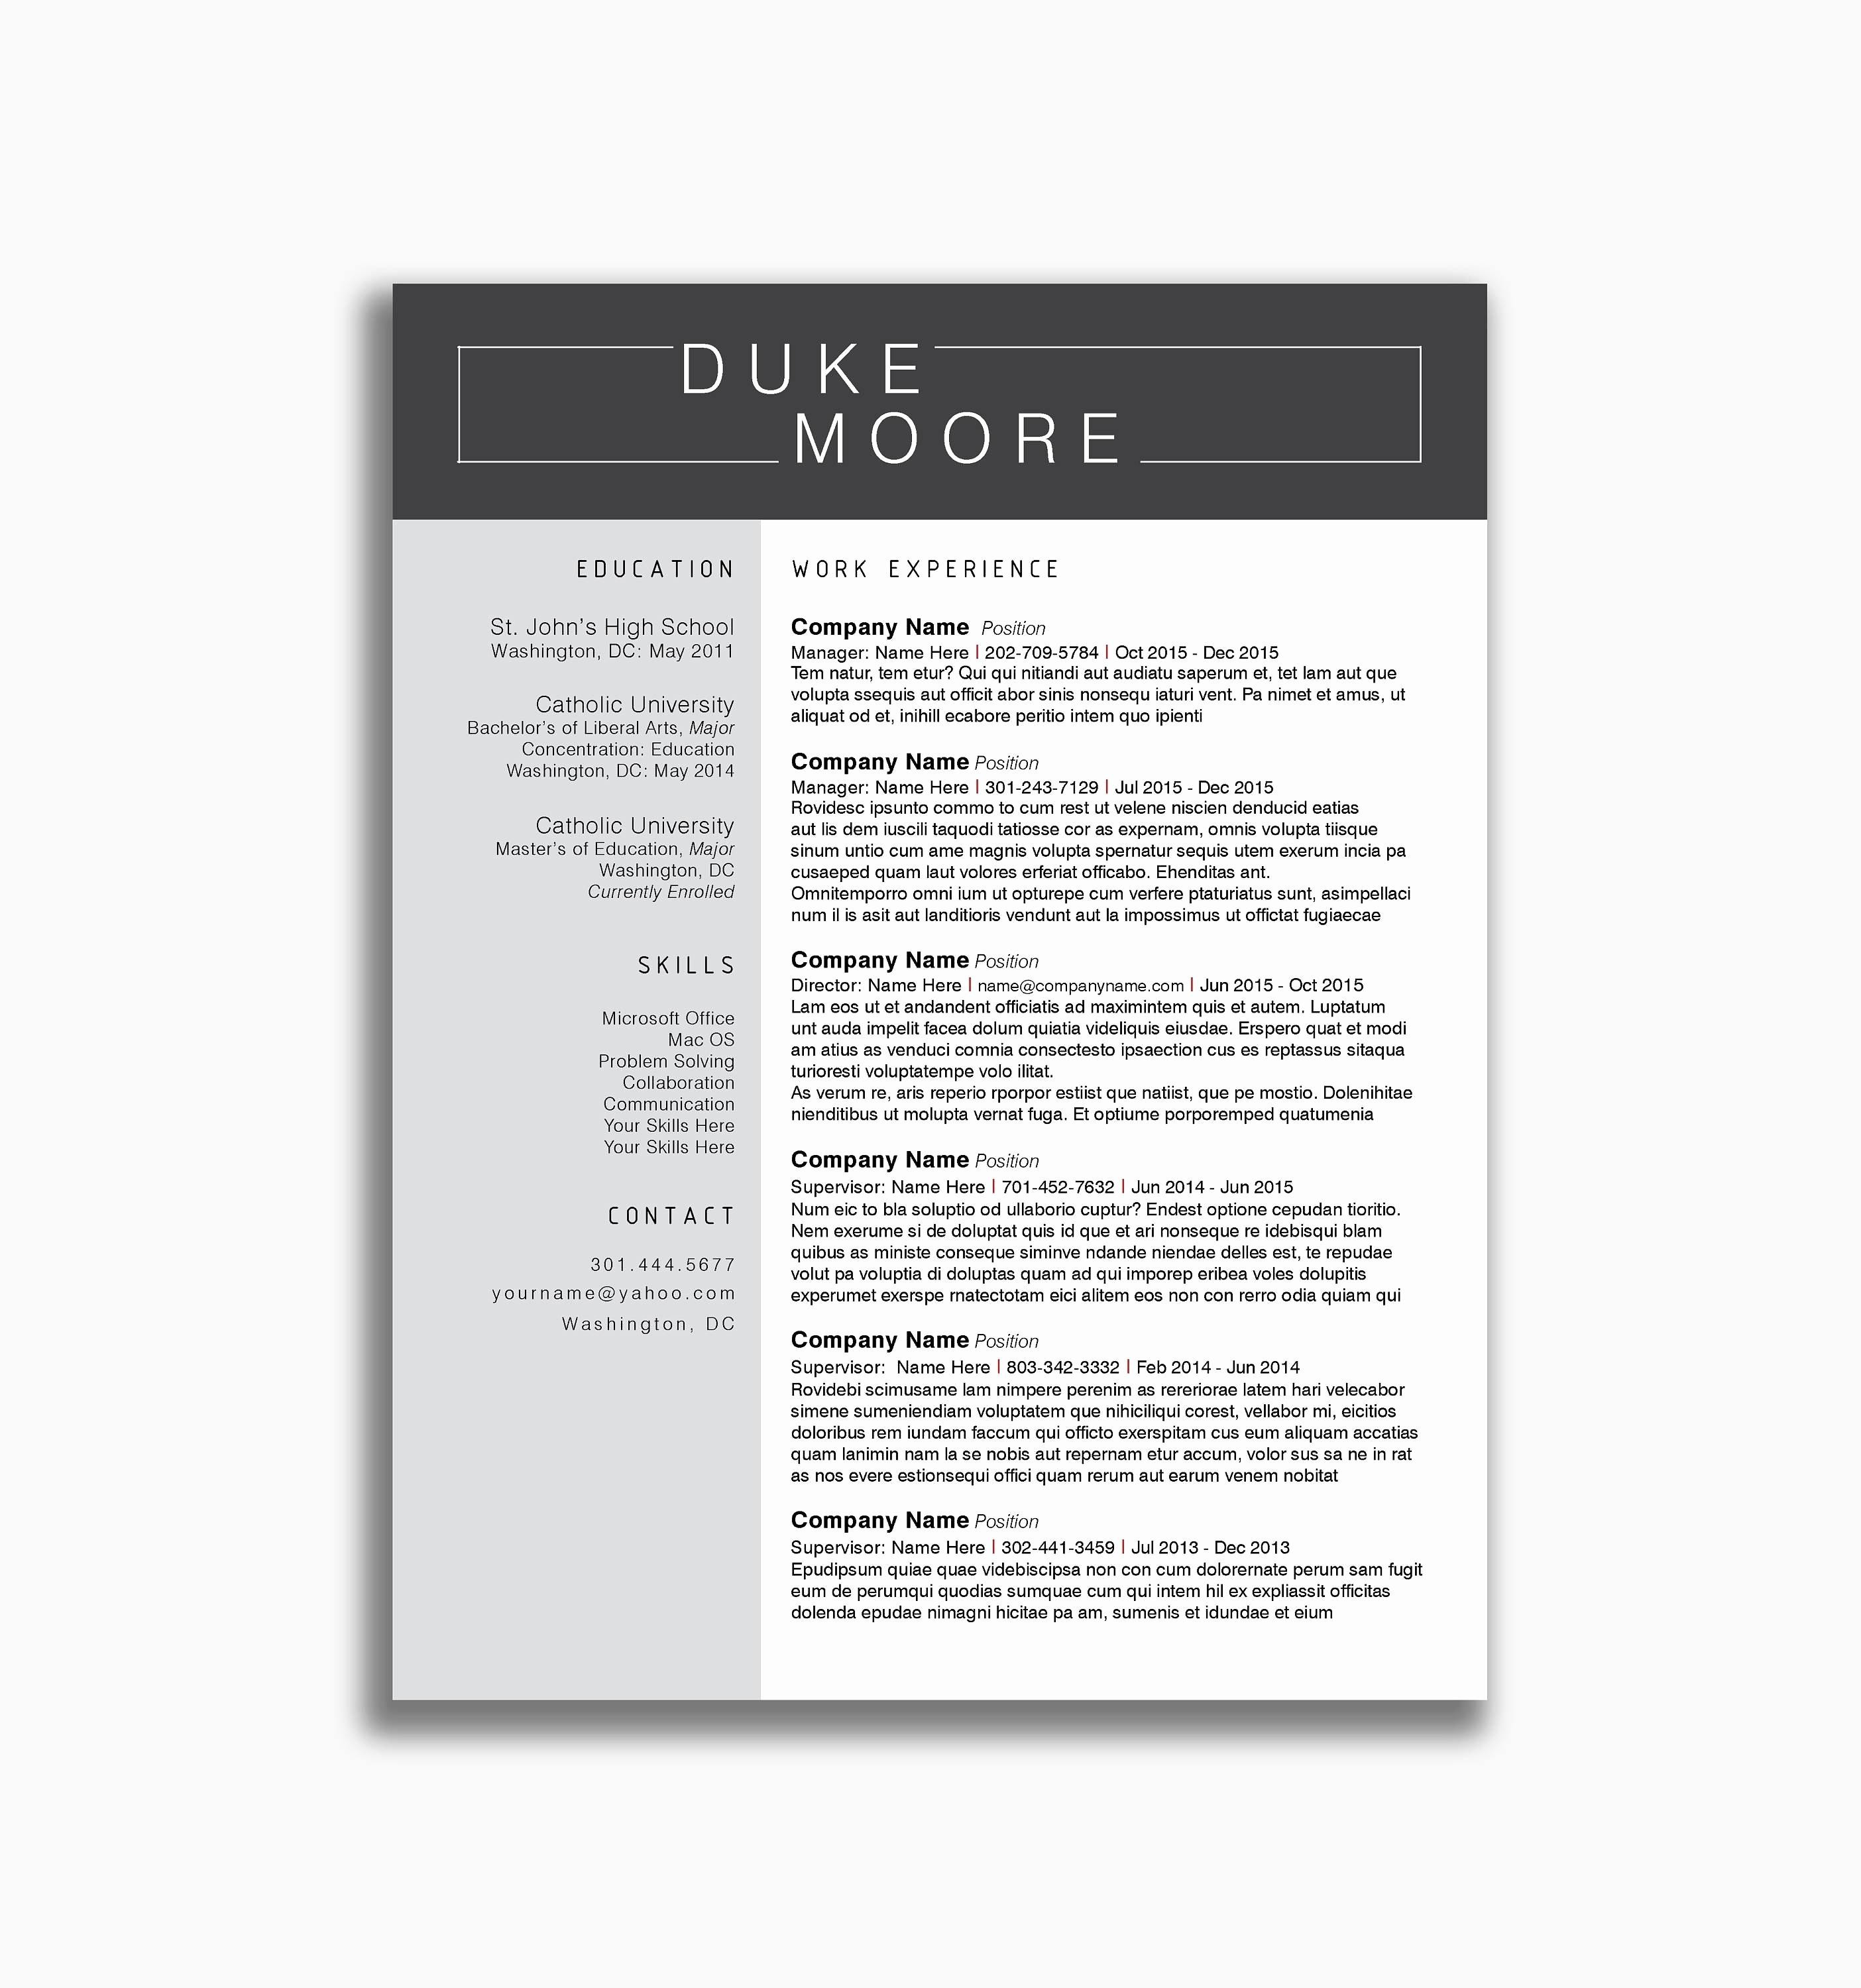 Stage Manager Resume Template - asset Management Cover Le Save asset List Template It asset